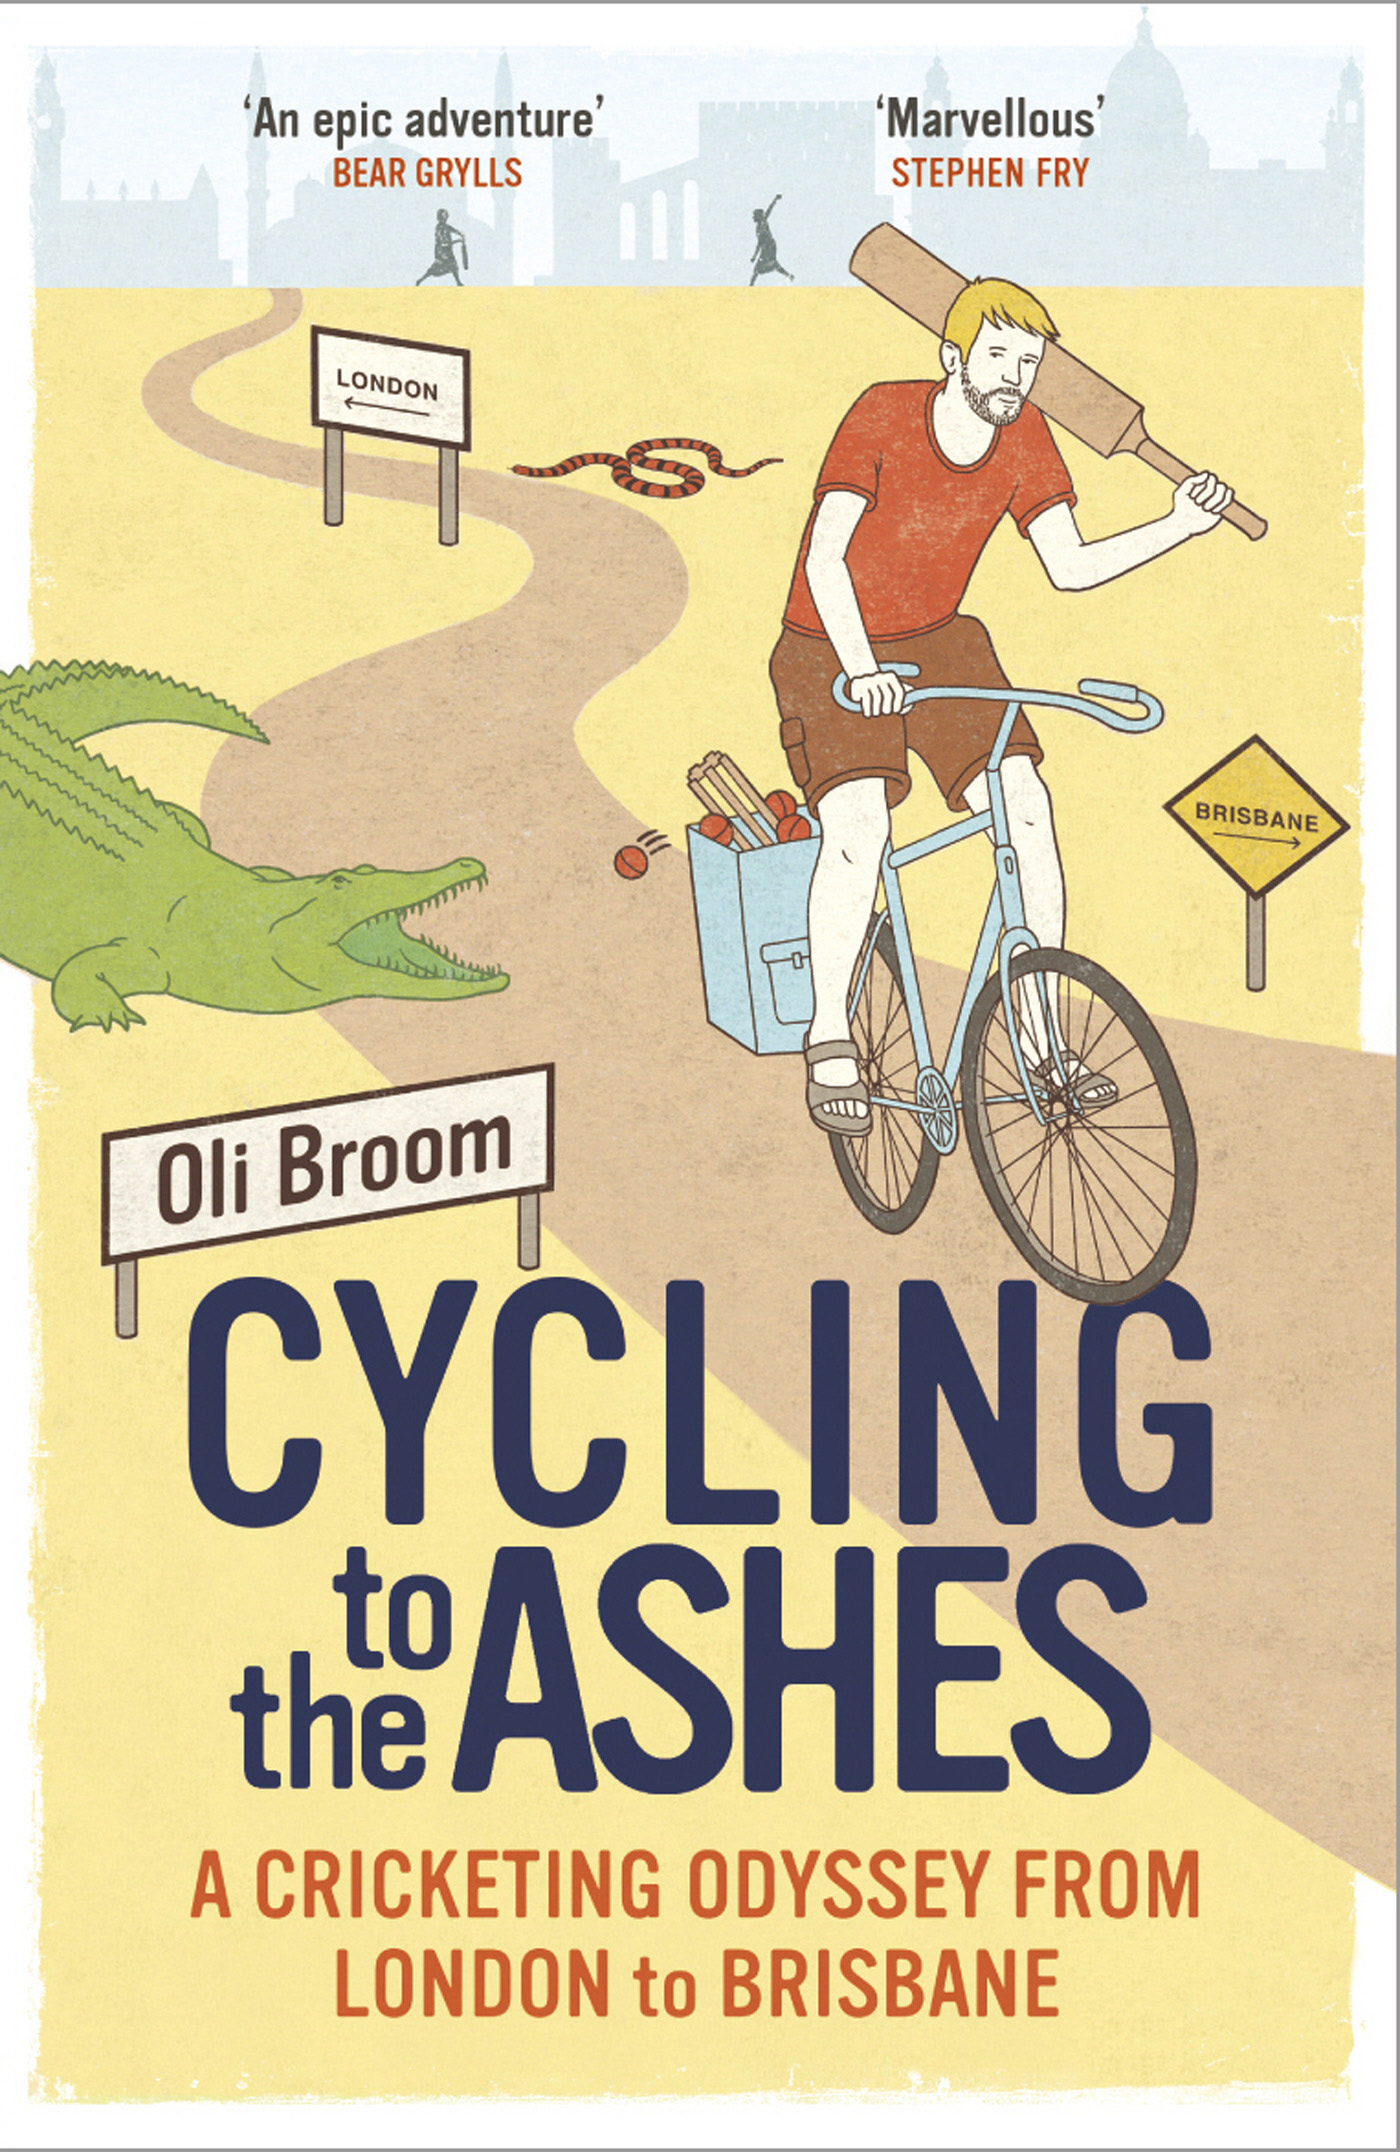 Cycling to the Ashes A Cricketing Odyssey From London to Brisbane